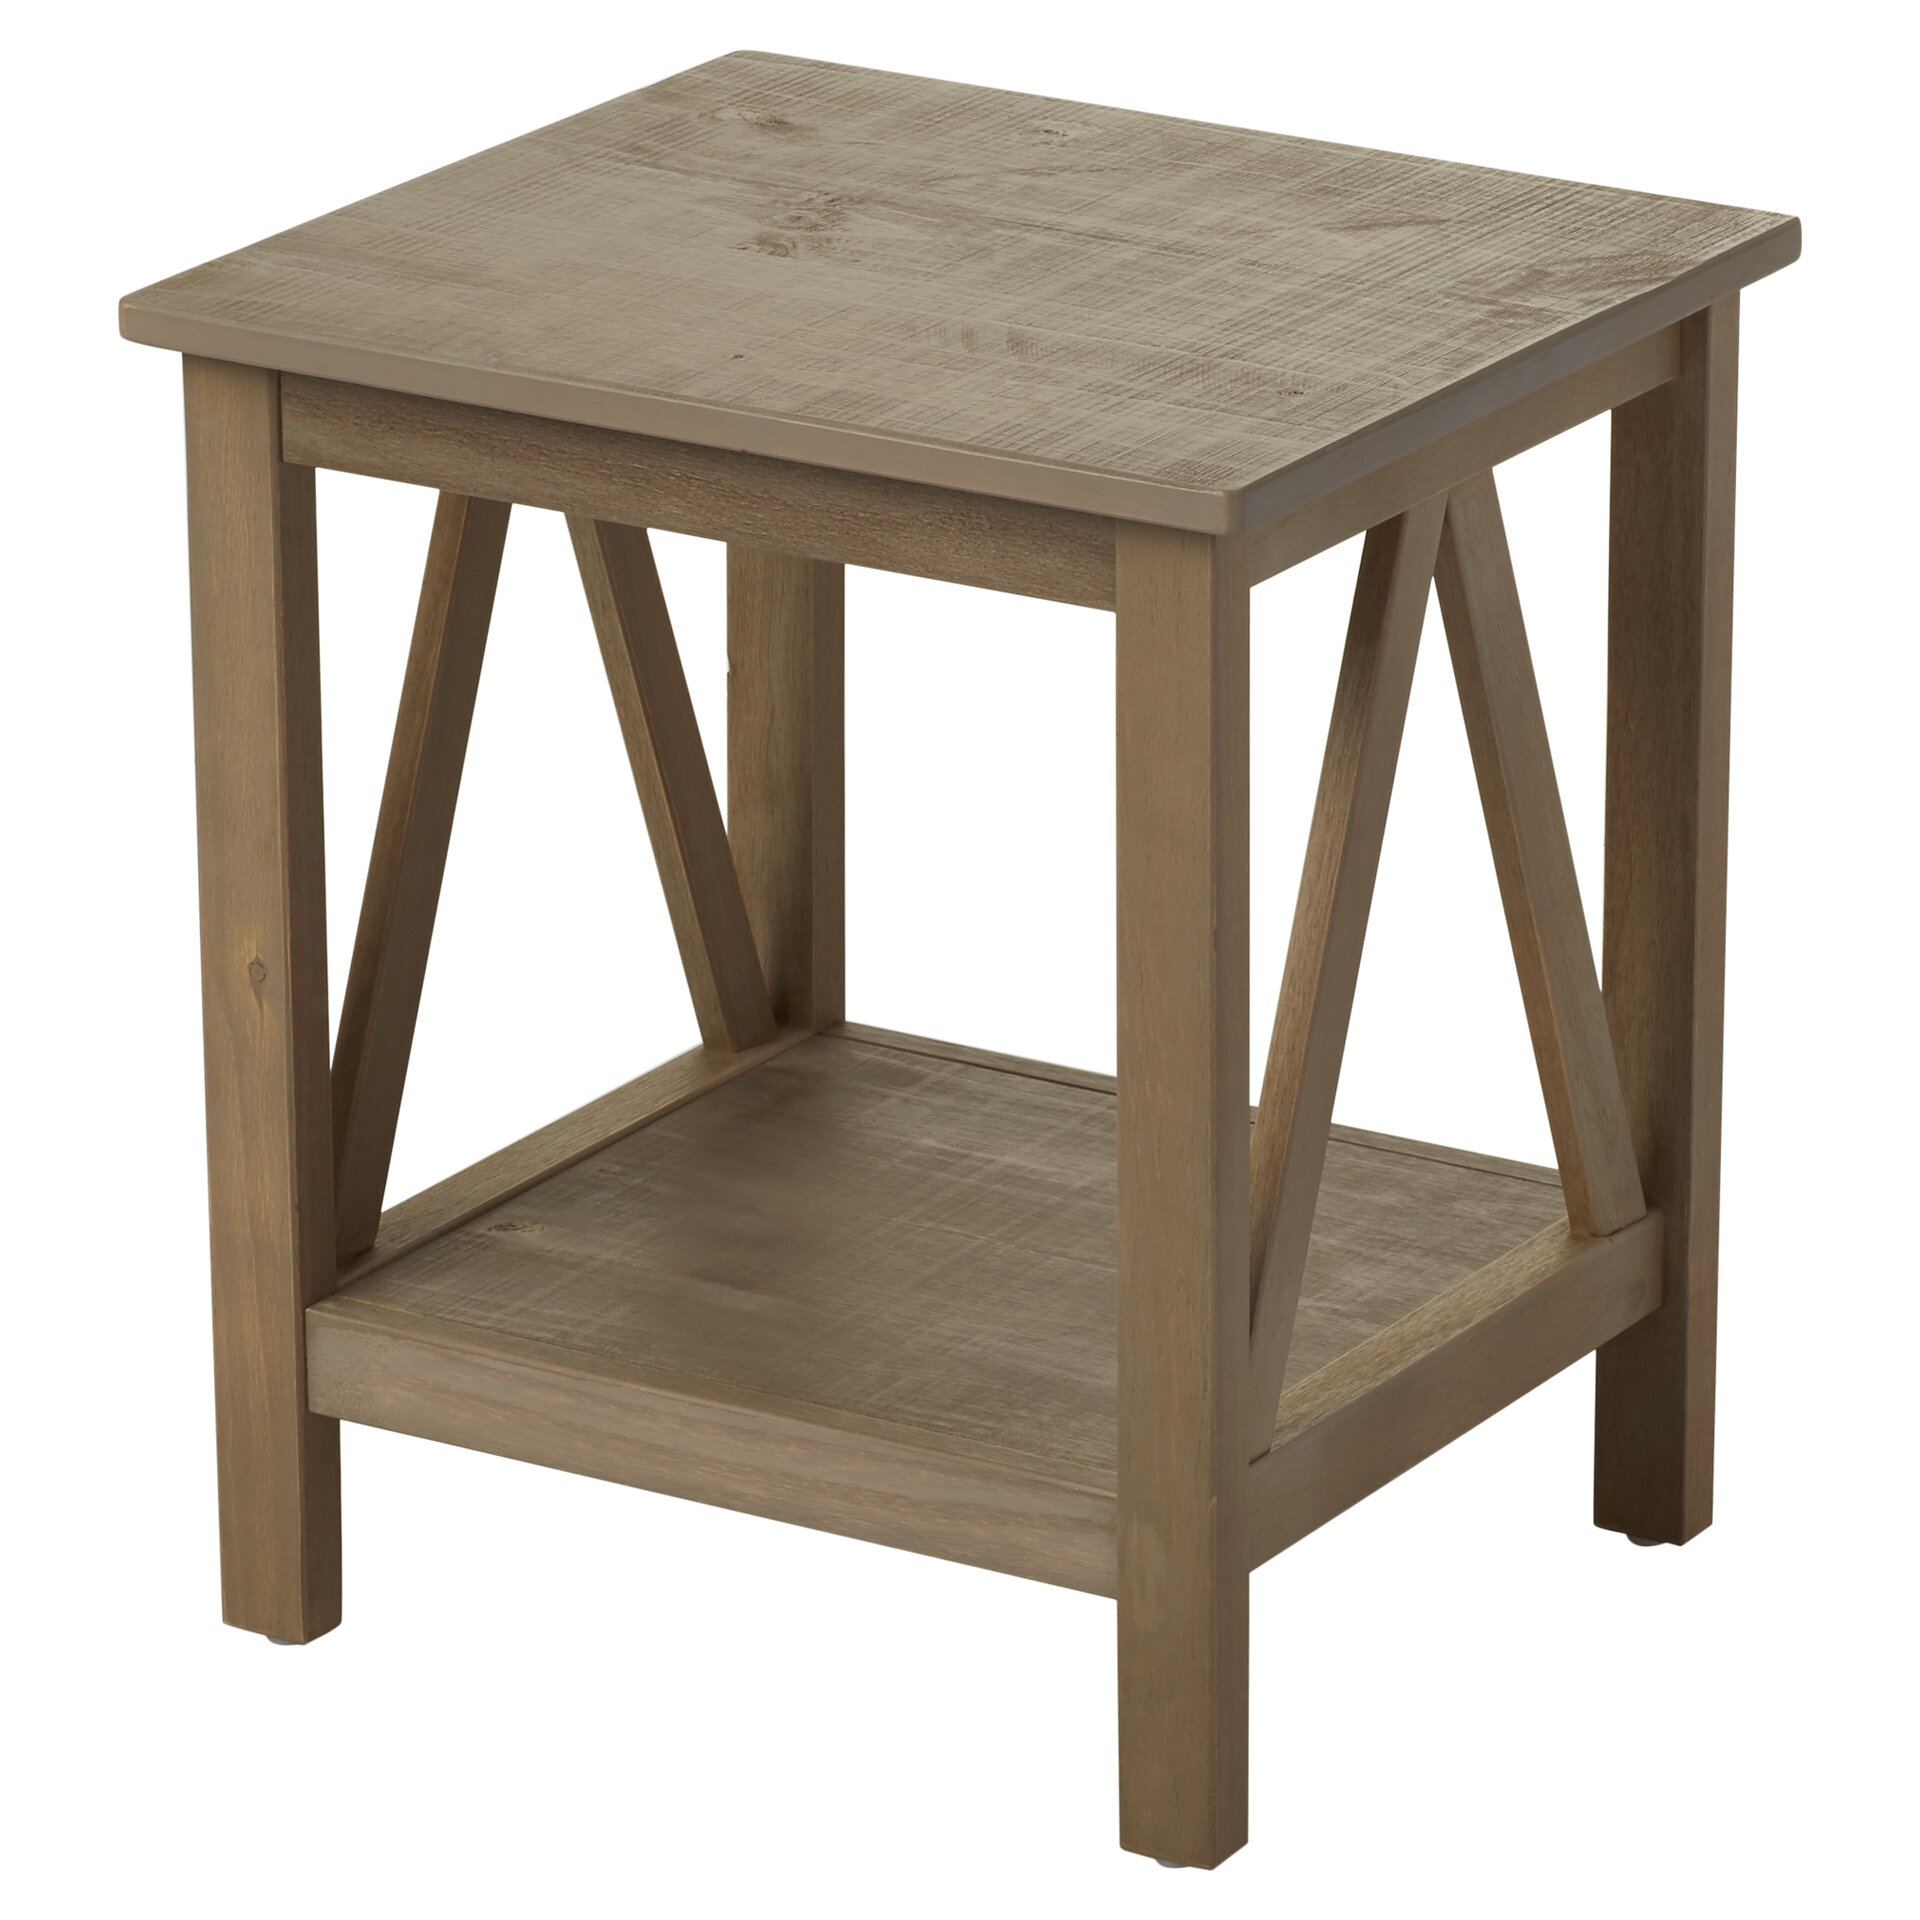 Andover mills soule end table reviews wayfair for End tables for sale near me